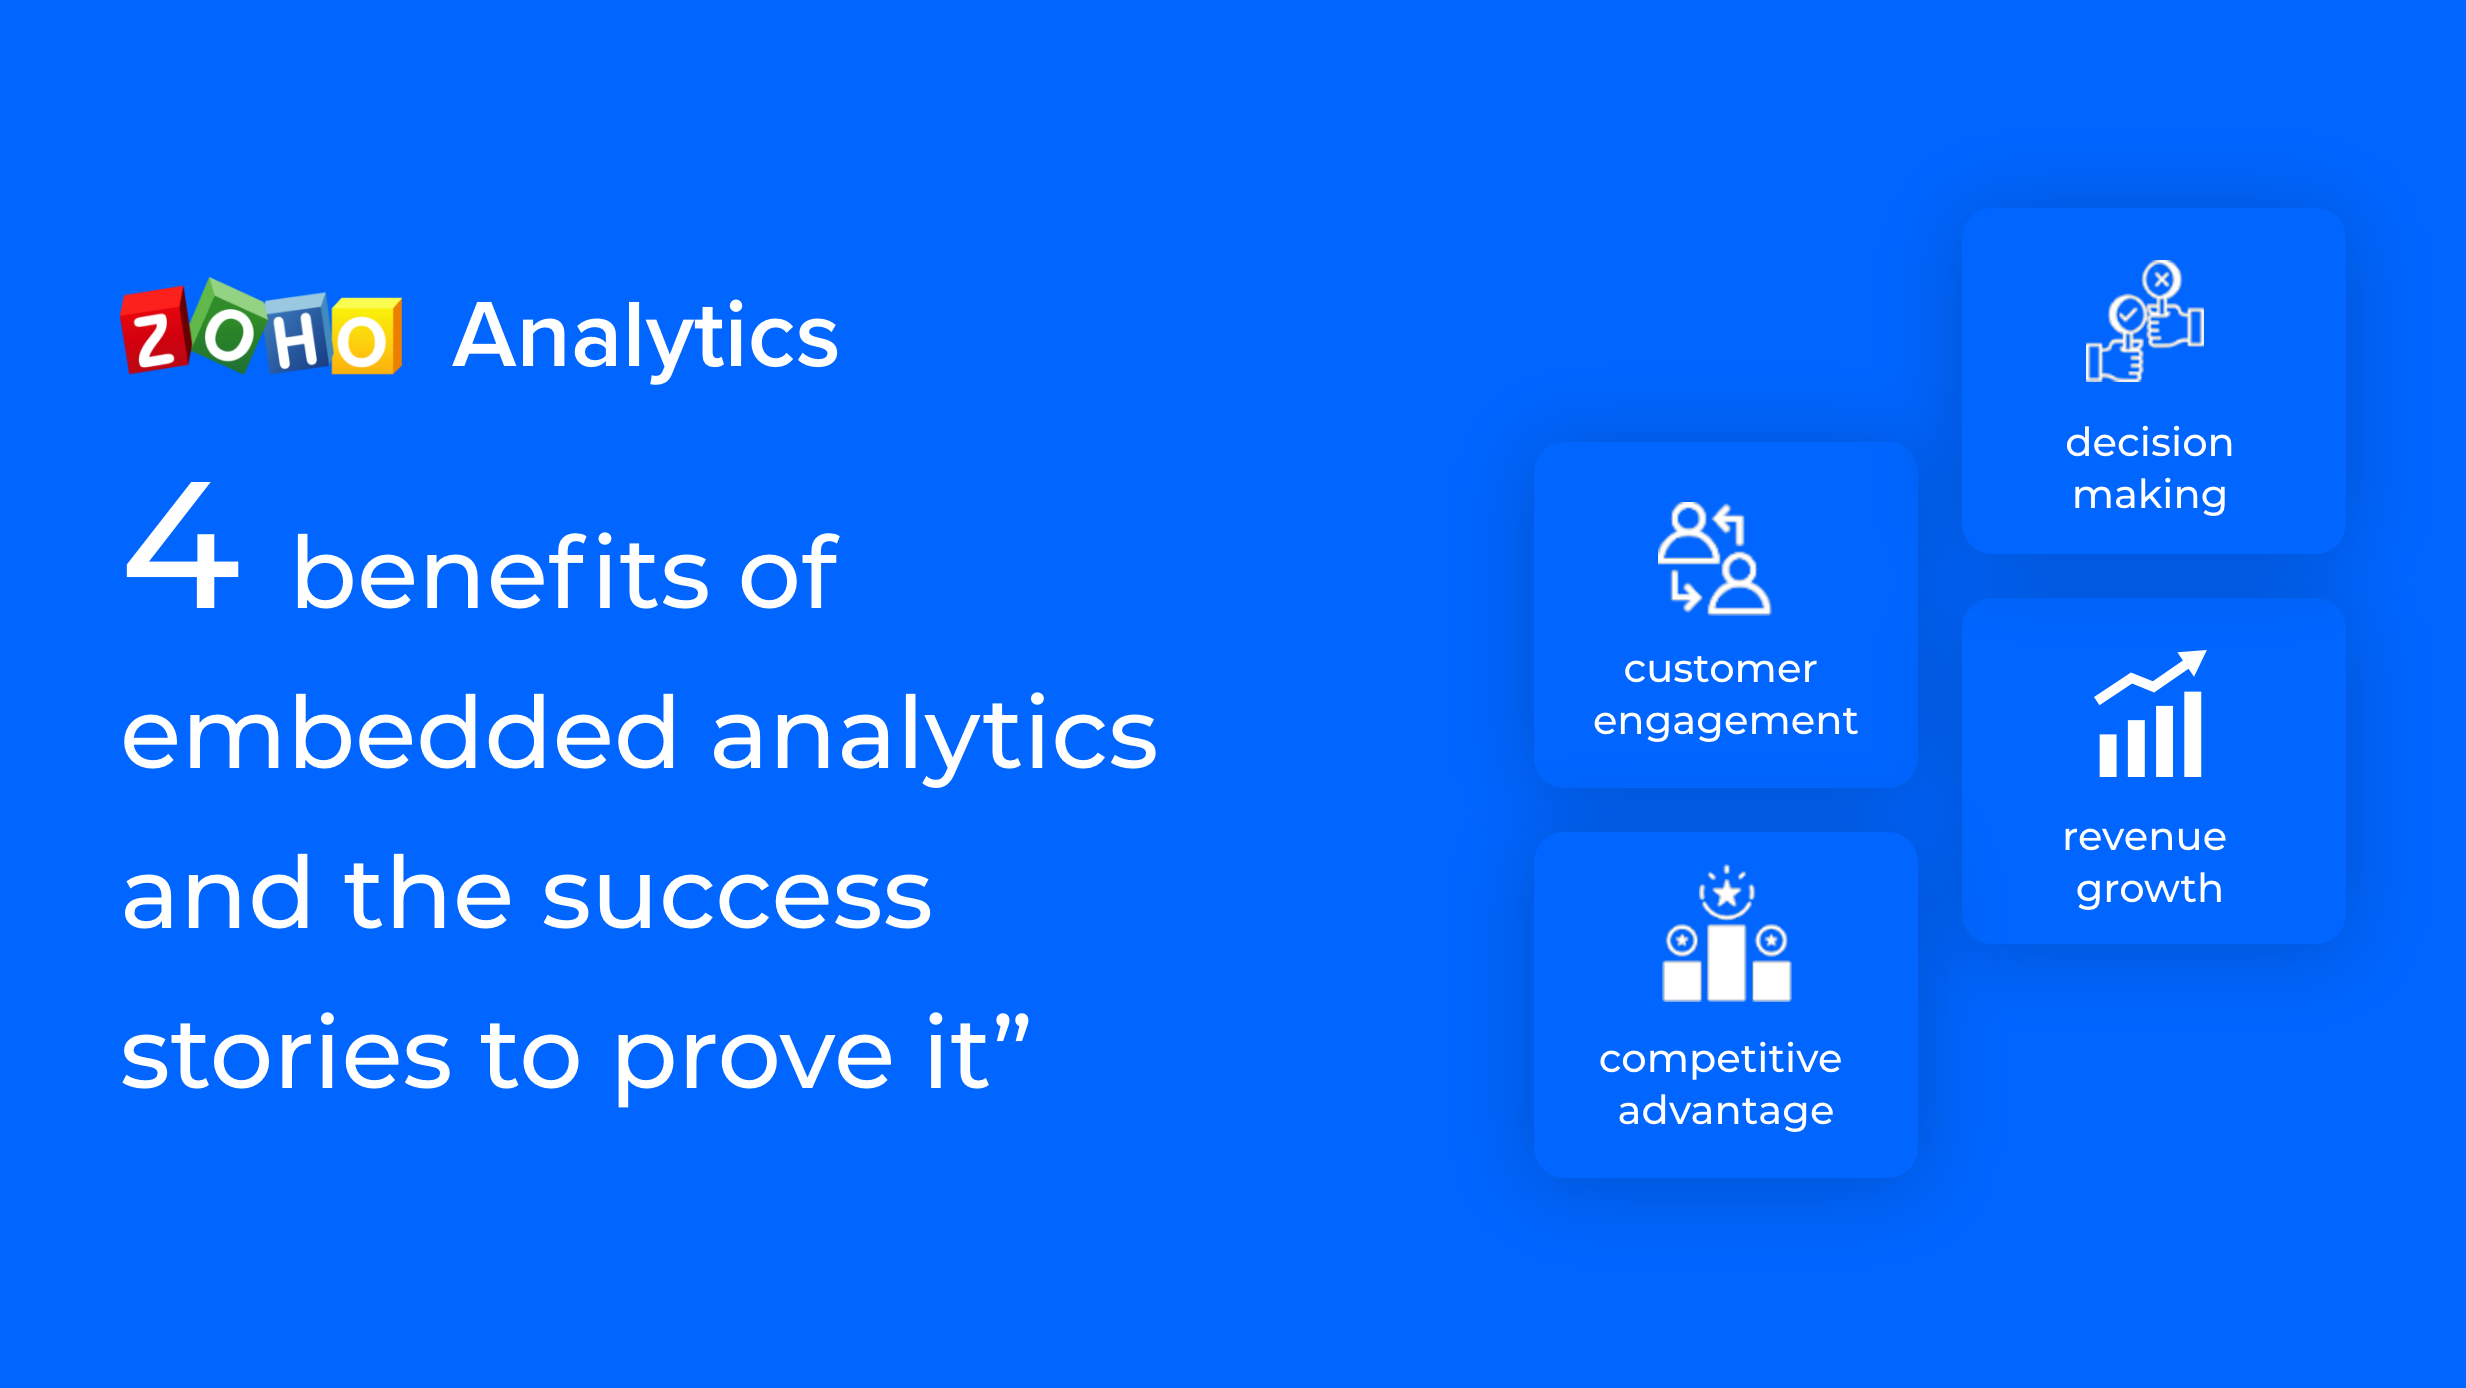 4 benefits of embedded analytics, and the success stories to prove it